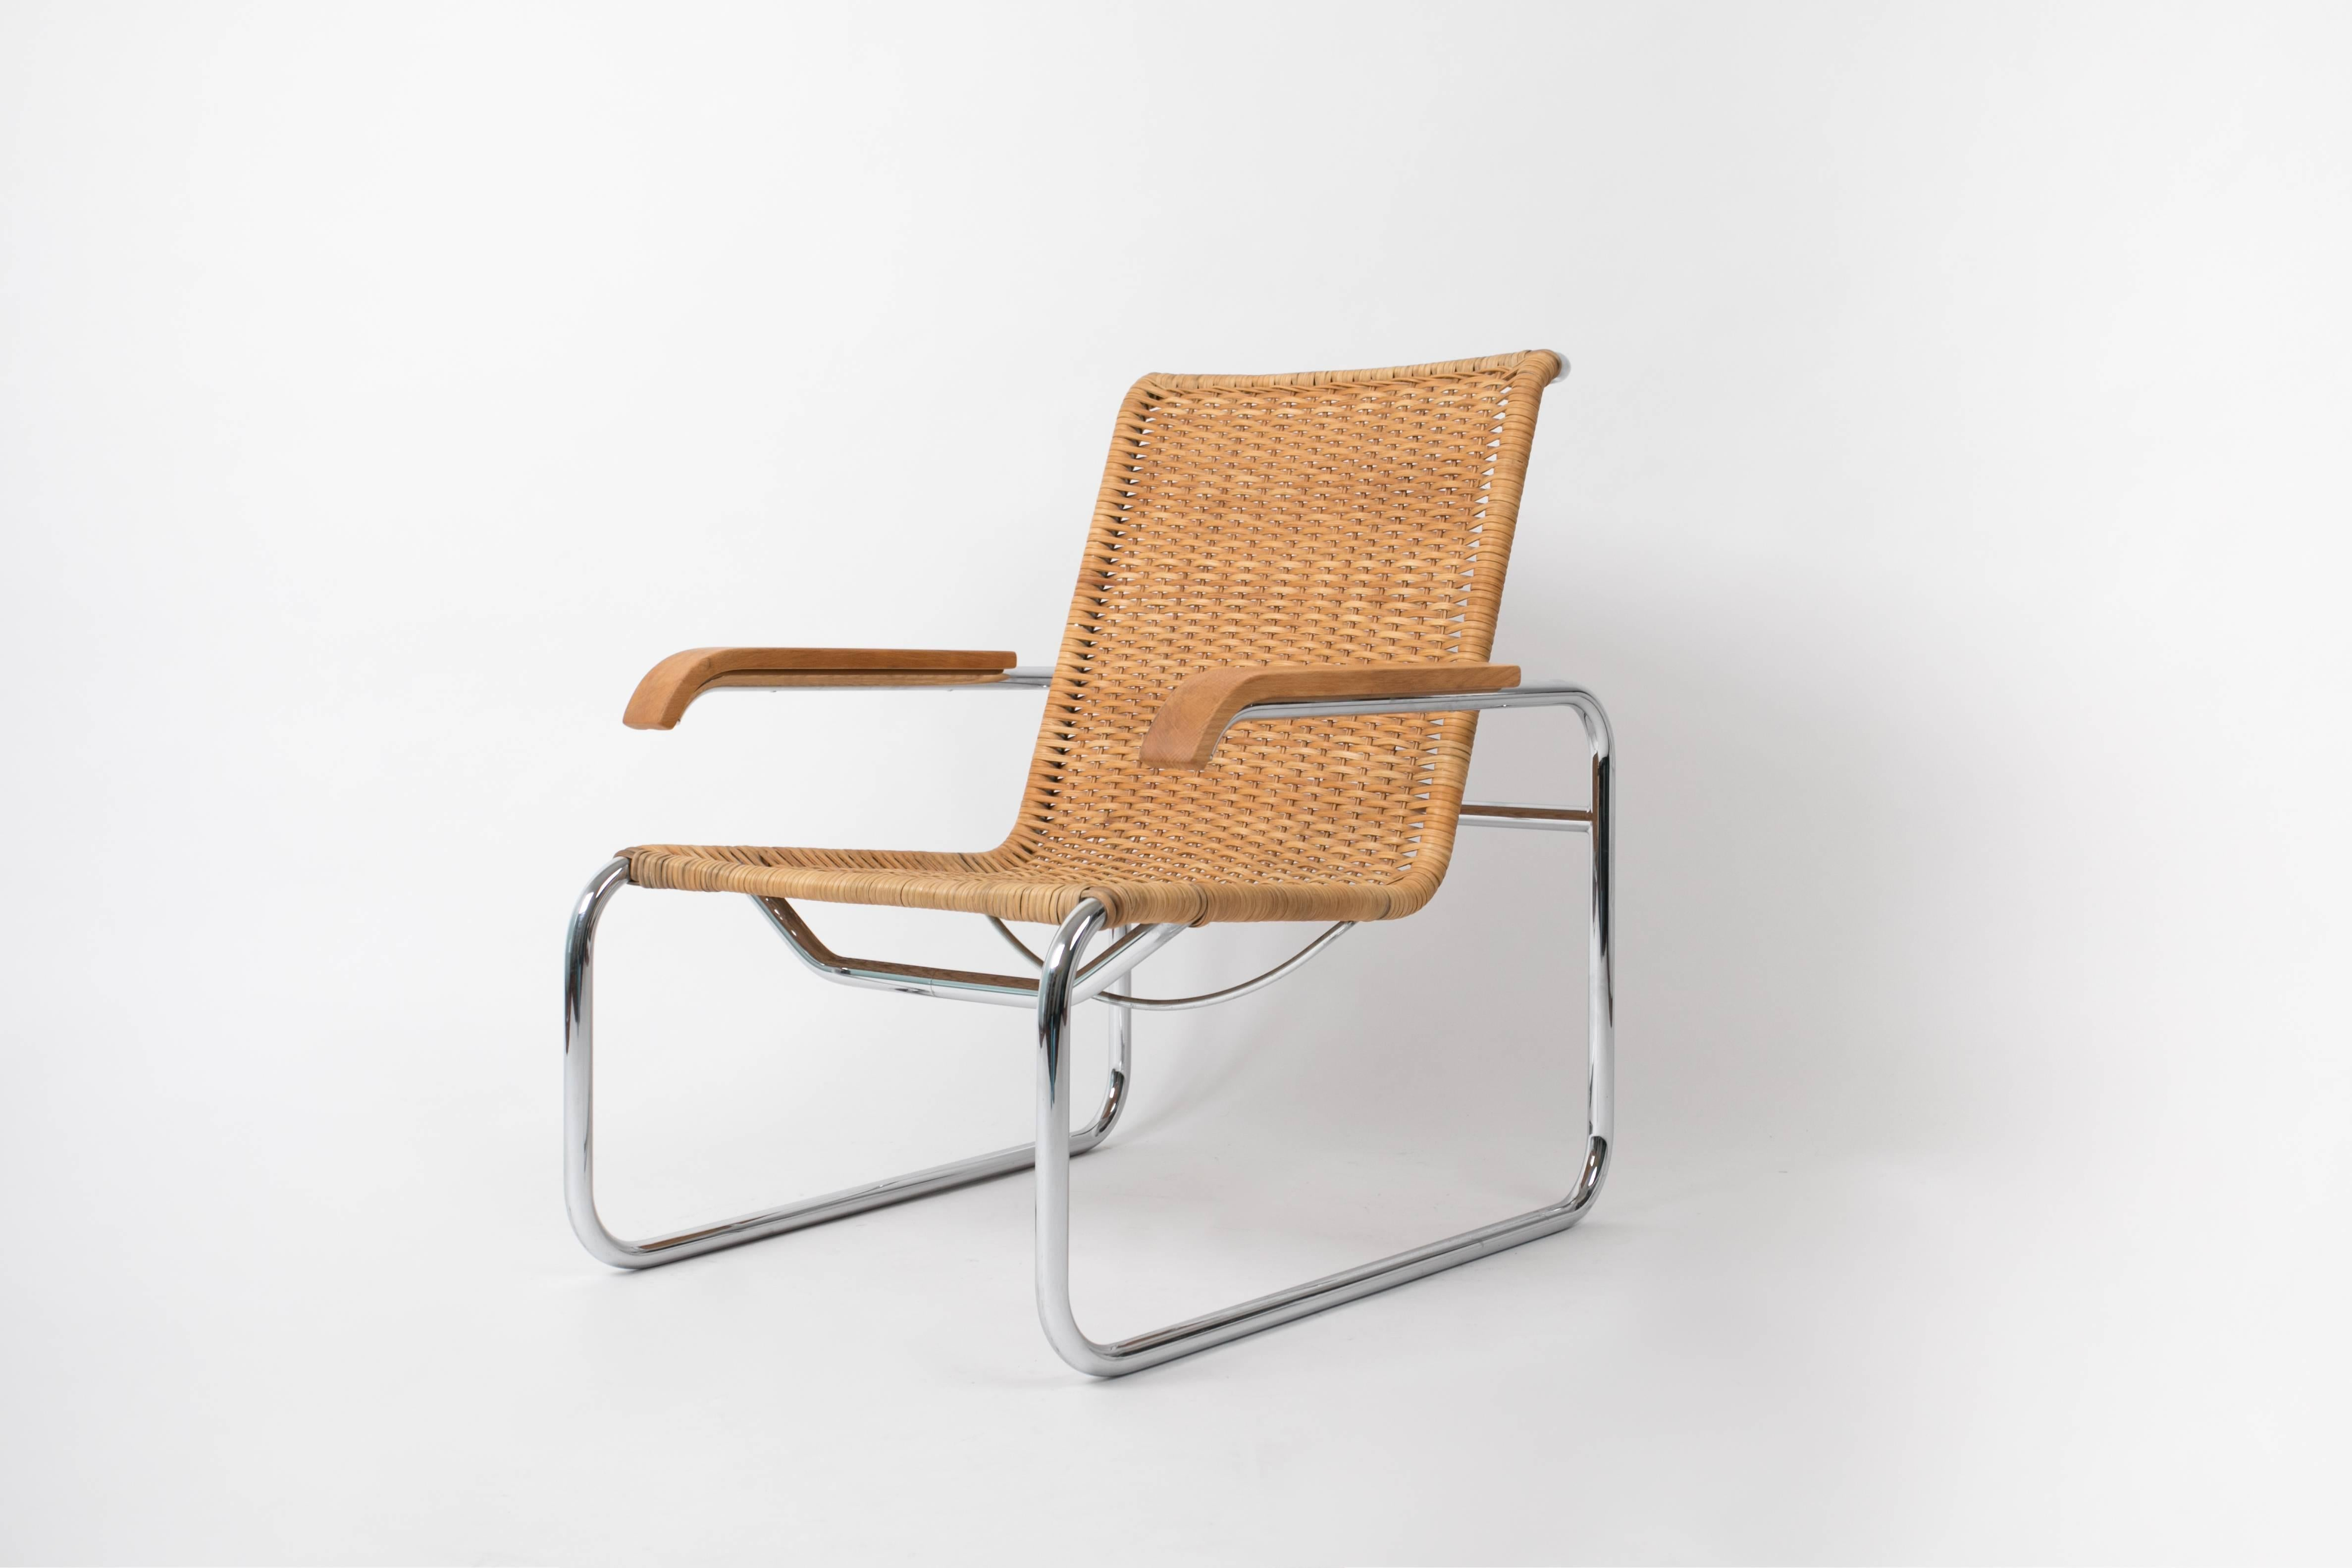 marcel breuer cesca chair with armrests folding top covers for thonet b35 rattan lounge at 1stdibs